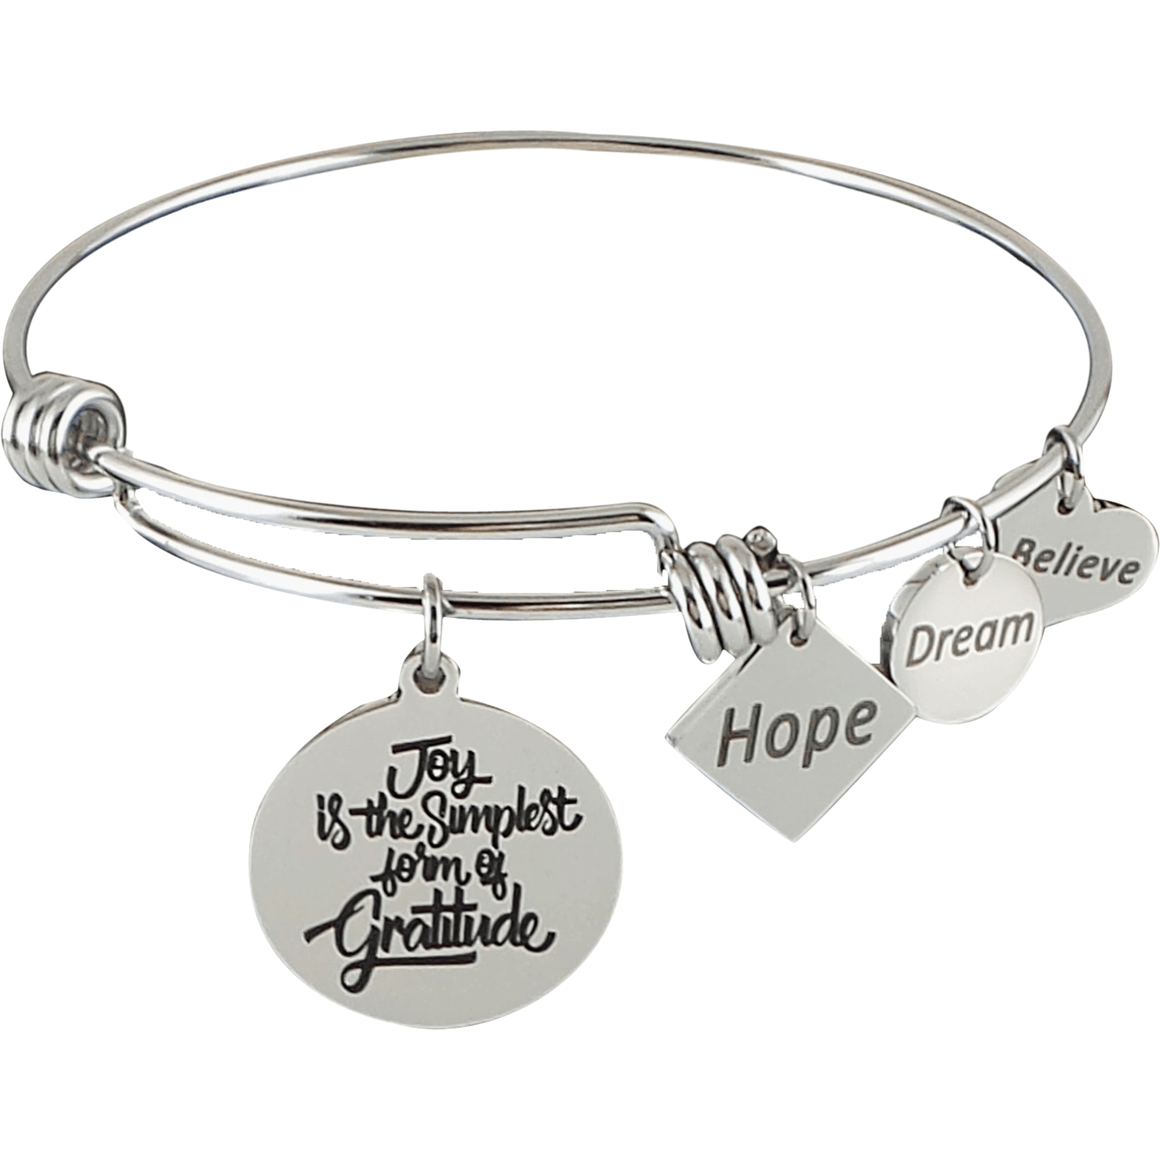 Stainless Steel Expandable Charm Bangle Bracelet Joy is the Simplest Form of Gratitude - Beads and Dangles